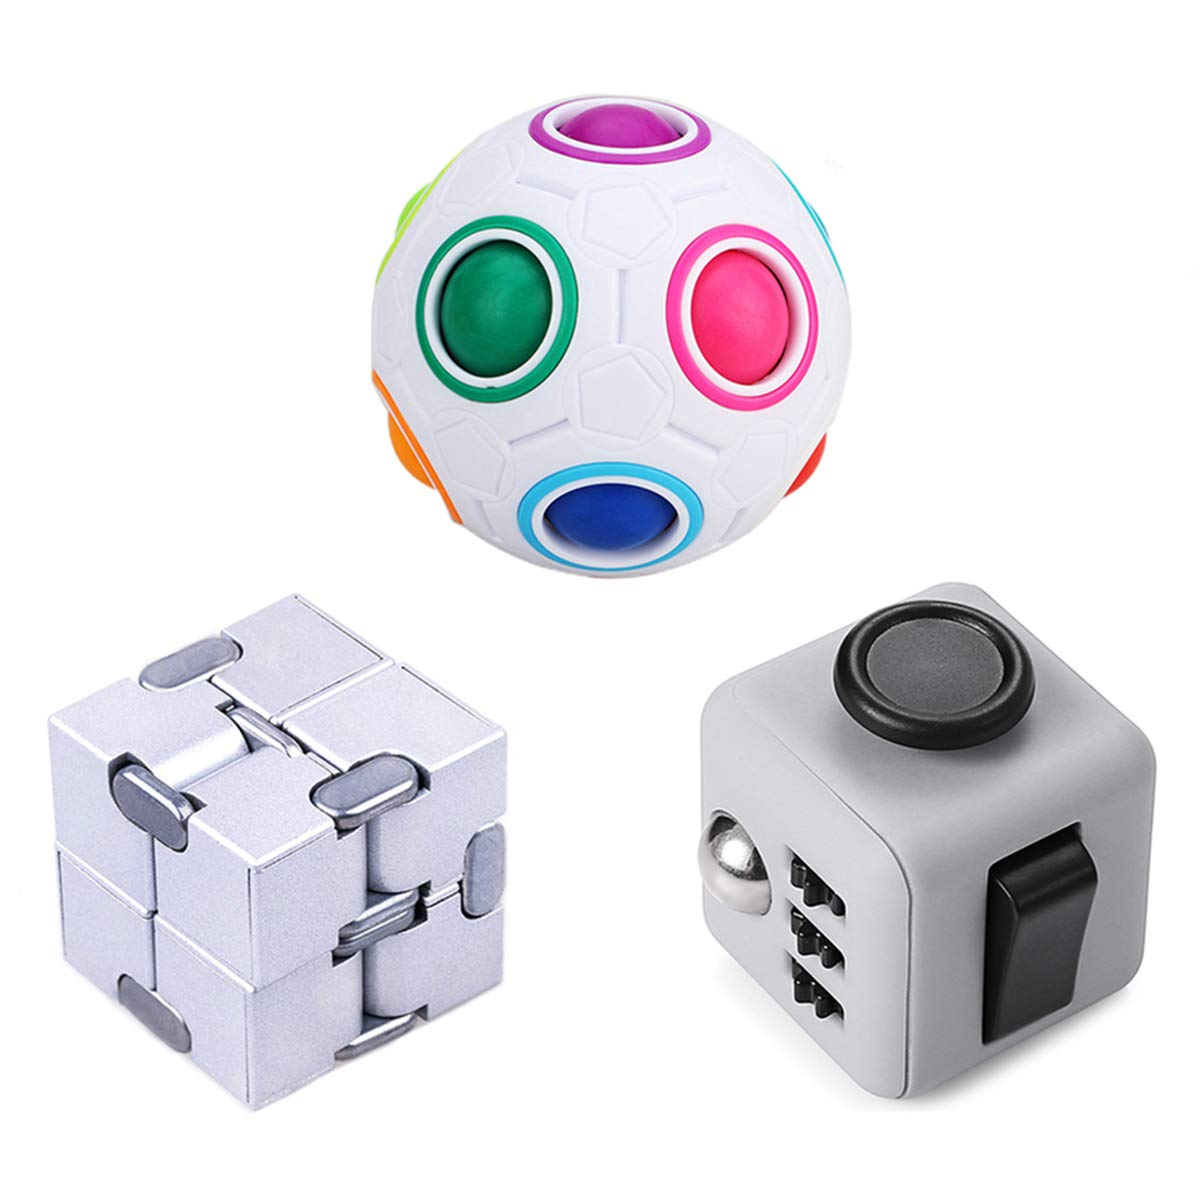 LOVEYIKOAI 3 Packs Fidget Finger Toys - Infinity Cube Fidget Cube Magic Ball for Stress and Anxiety Relief ADHD Office Desk Toys Perfect Toys for Kids or Adults by LOVEYIKOAI